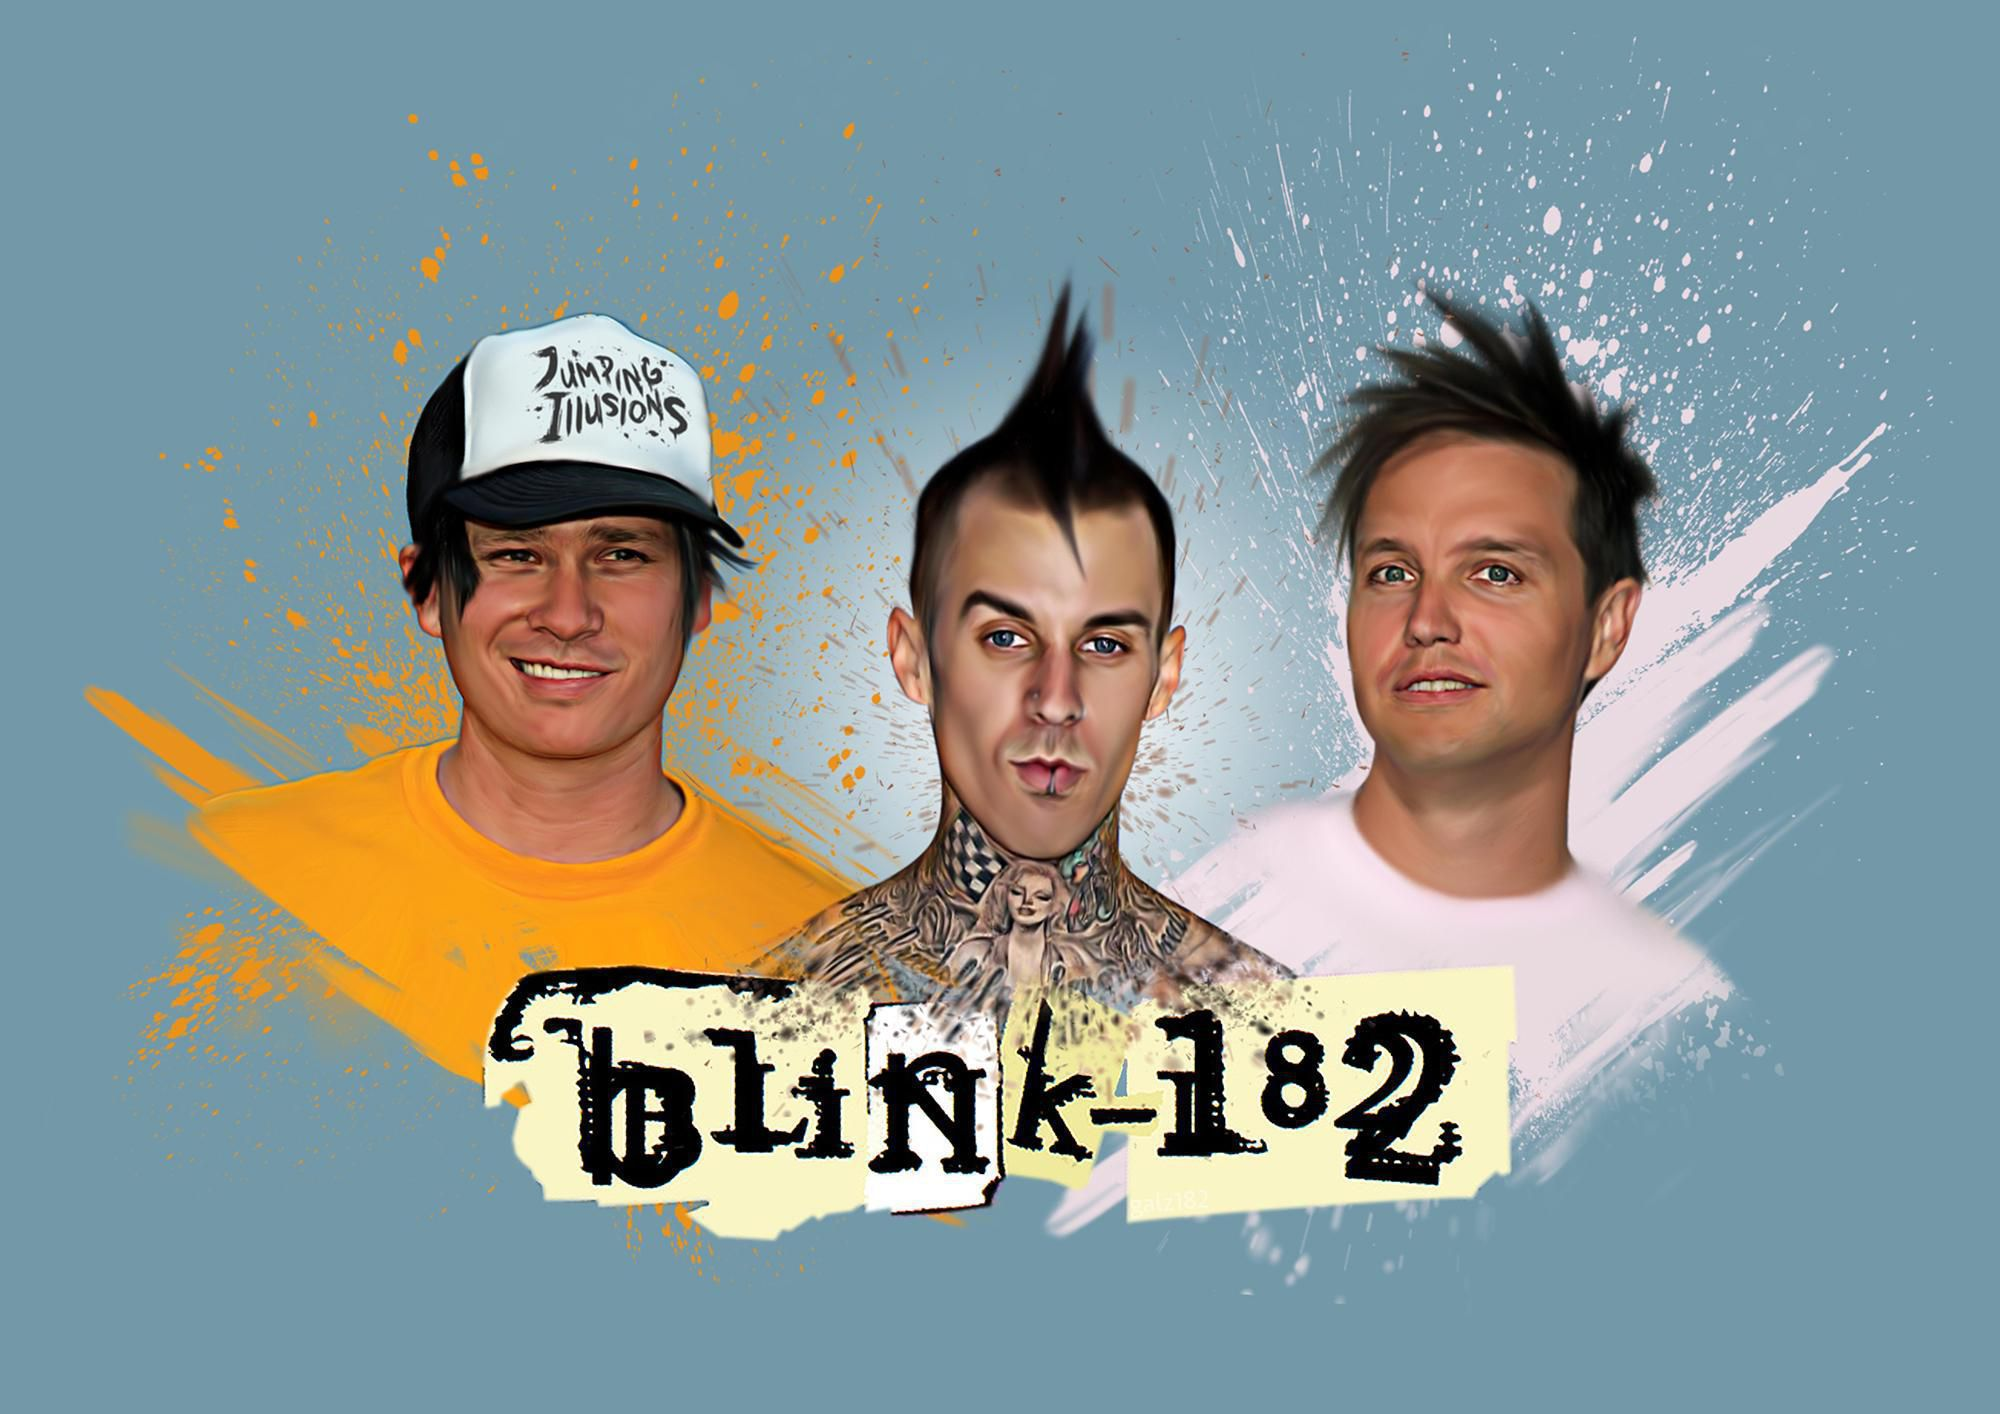 Blink 182 Wallpapers